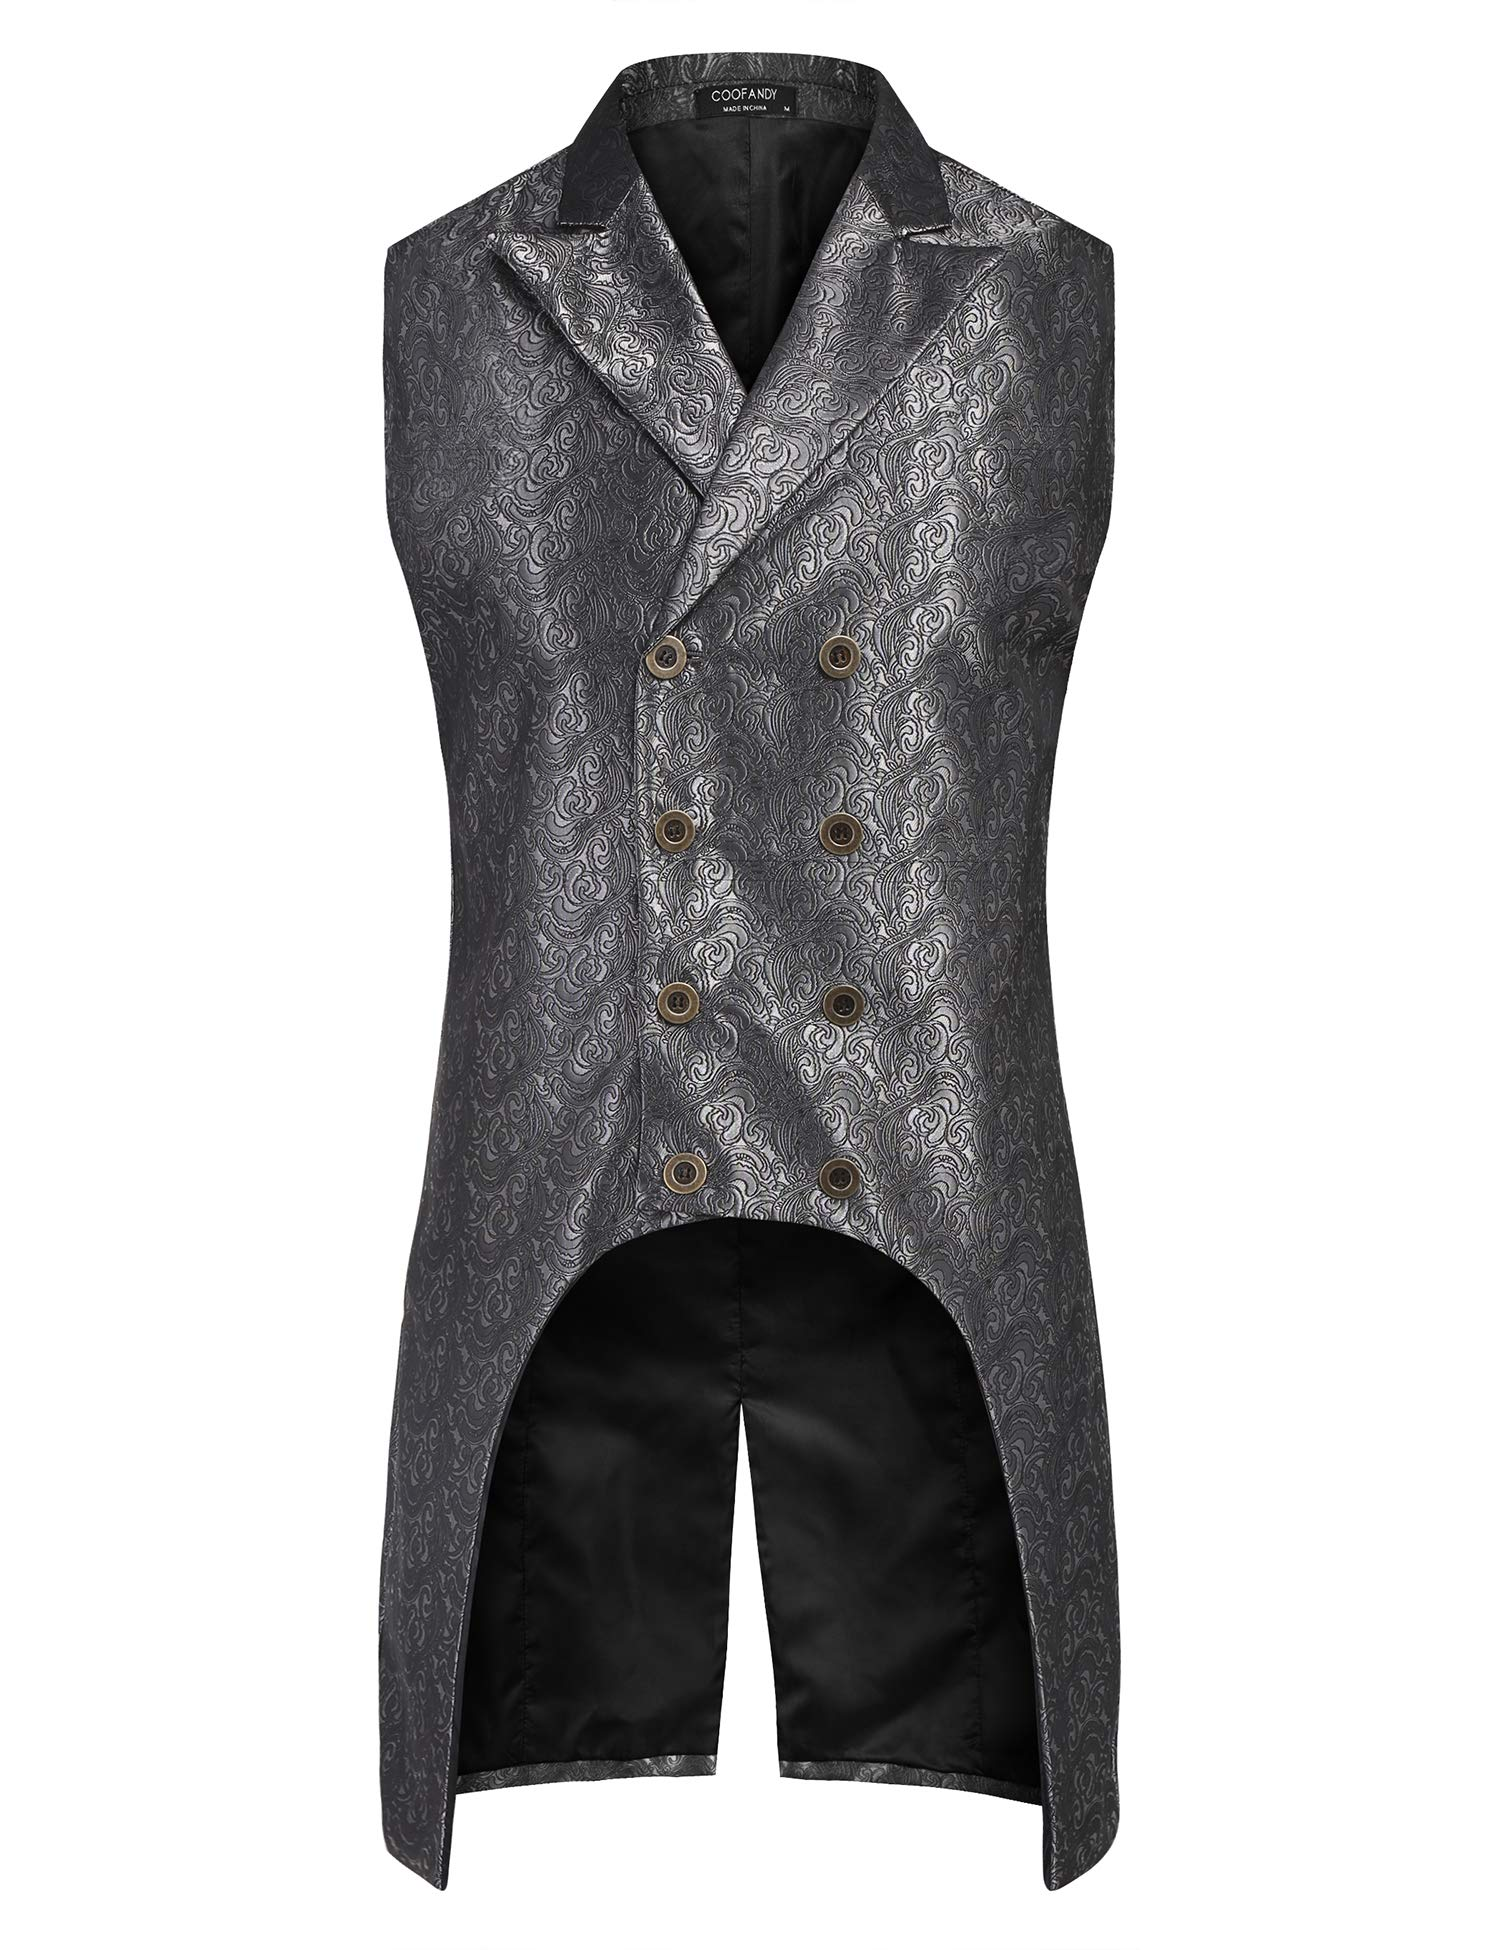 COOFANDY Mens Gothic Steampunk Vest Slim Fit Sleeveless Tailcoat Jacquard Brocade Double Breasted Waistcoat 3